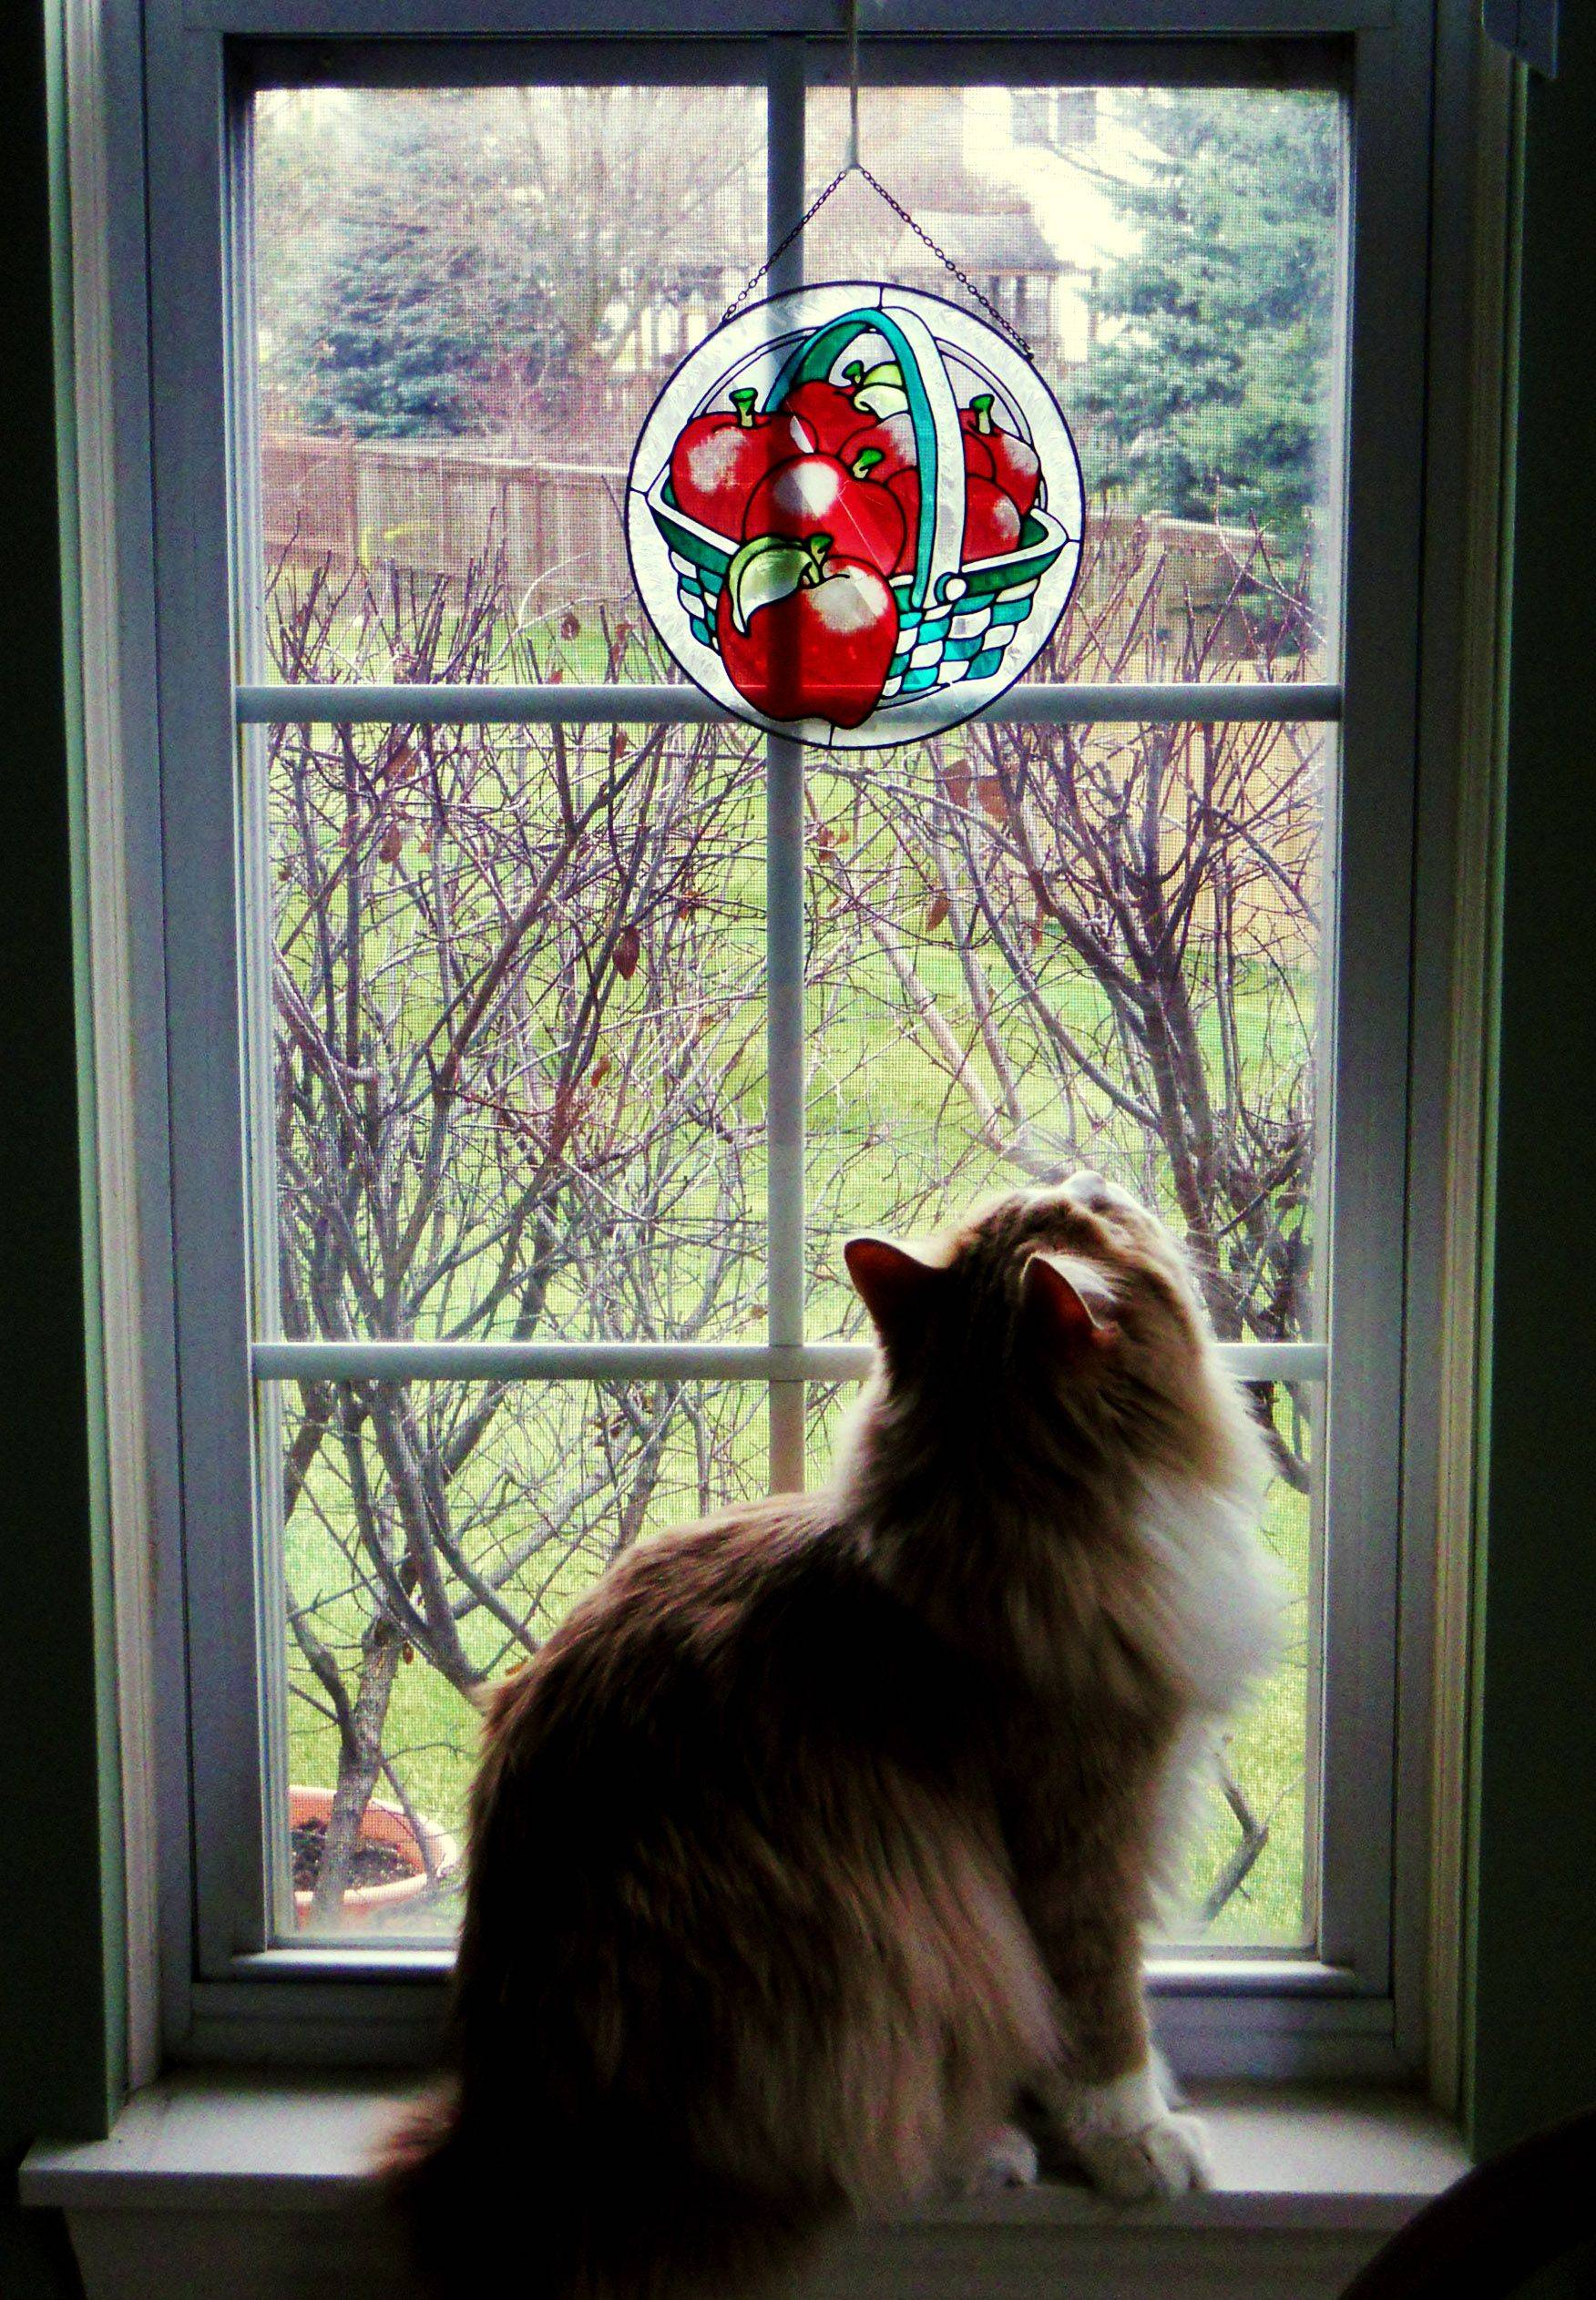 A Siberian cat named Nikita watches a ladybug on the window at a Grayslake home.